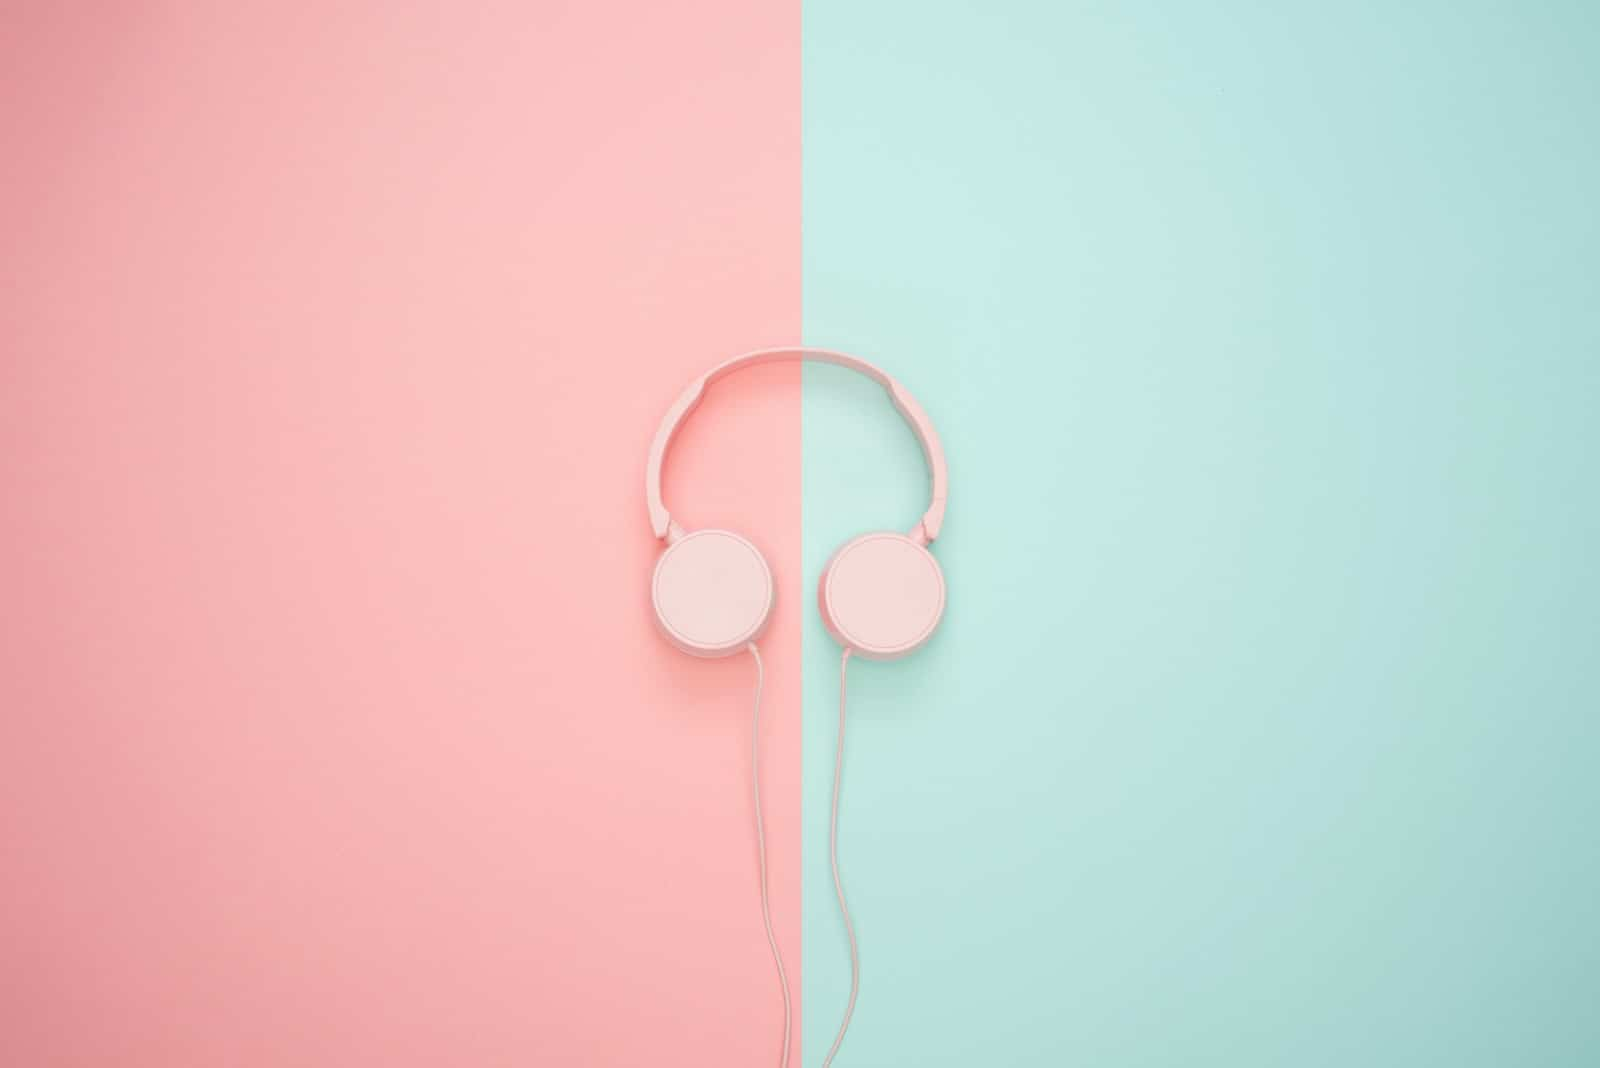 Pink headphones on a pink and green background